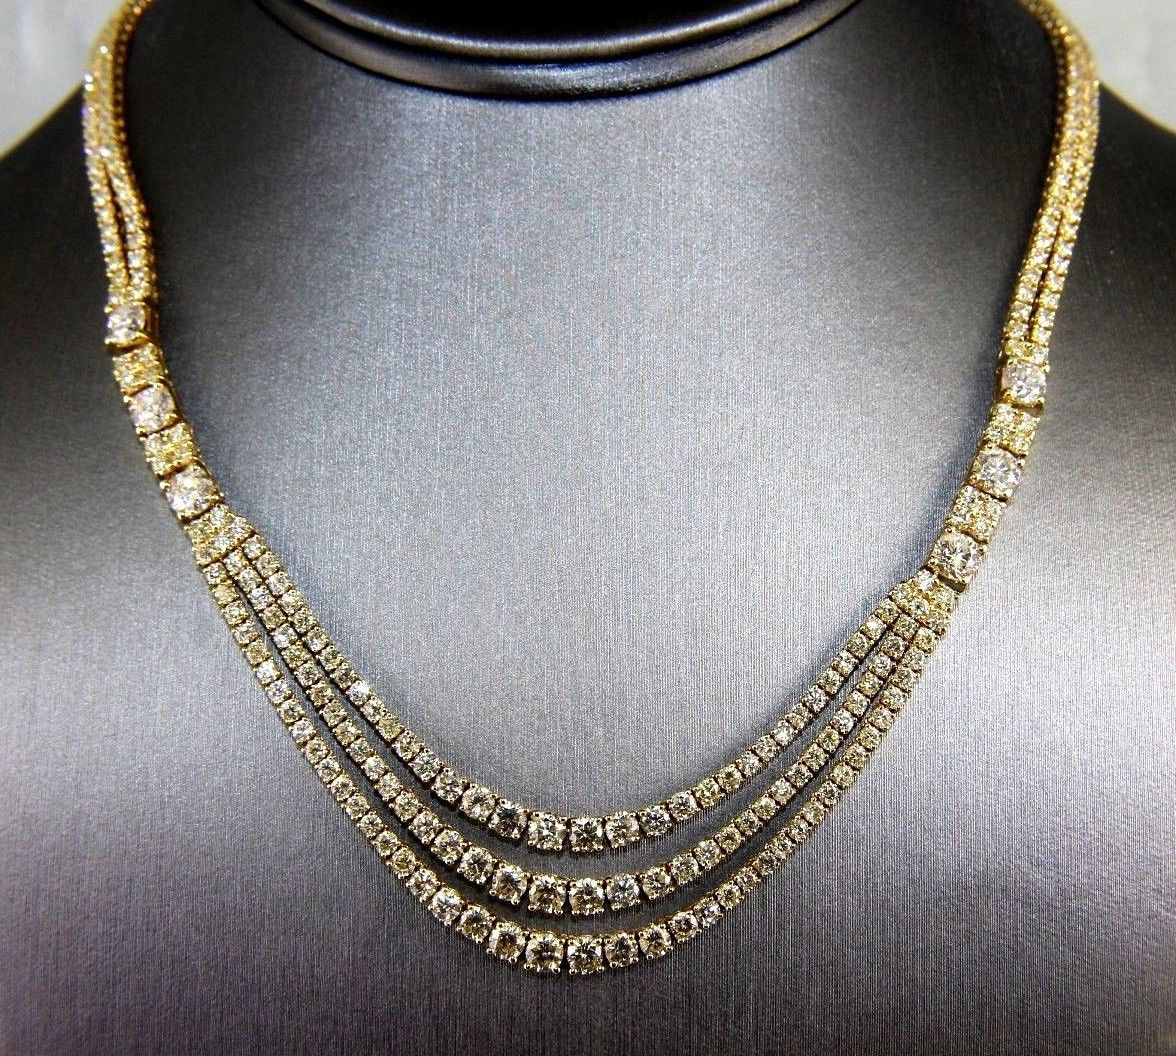 3 Layer Diamond Cluster Dangle Fashion Tennis Necklace 18k Yellow Gold 21 90ct Joias Acessorios Biju